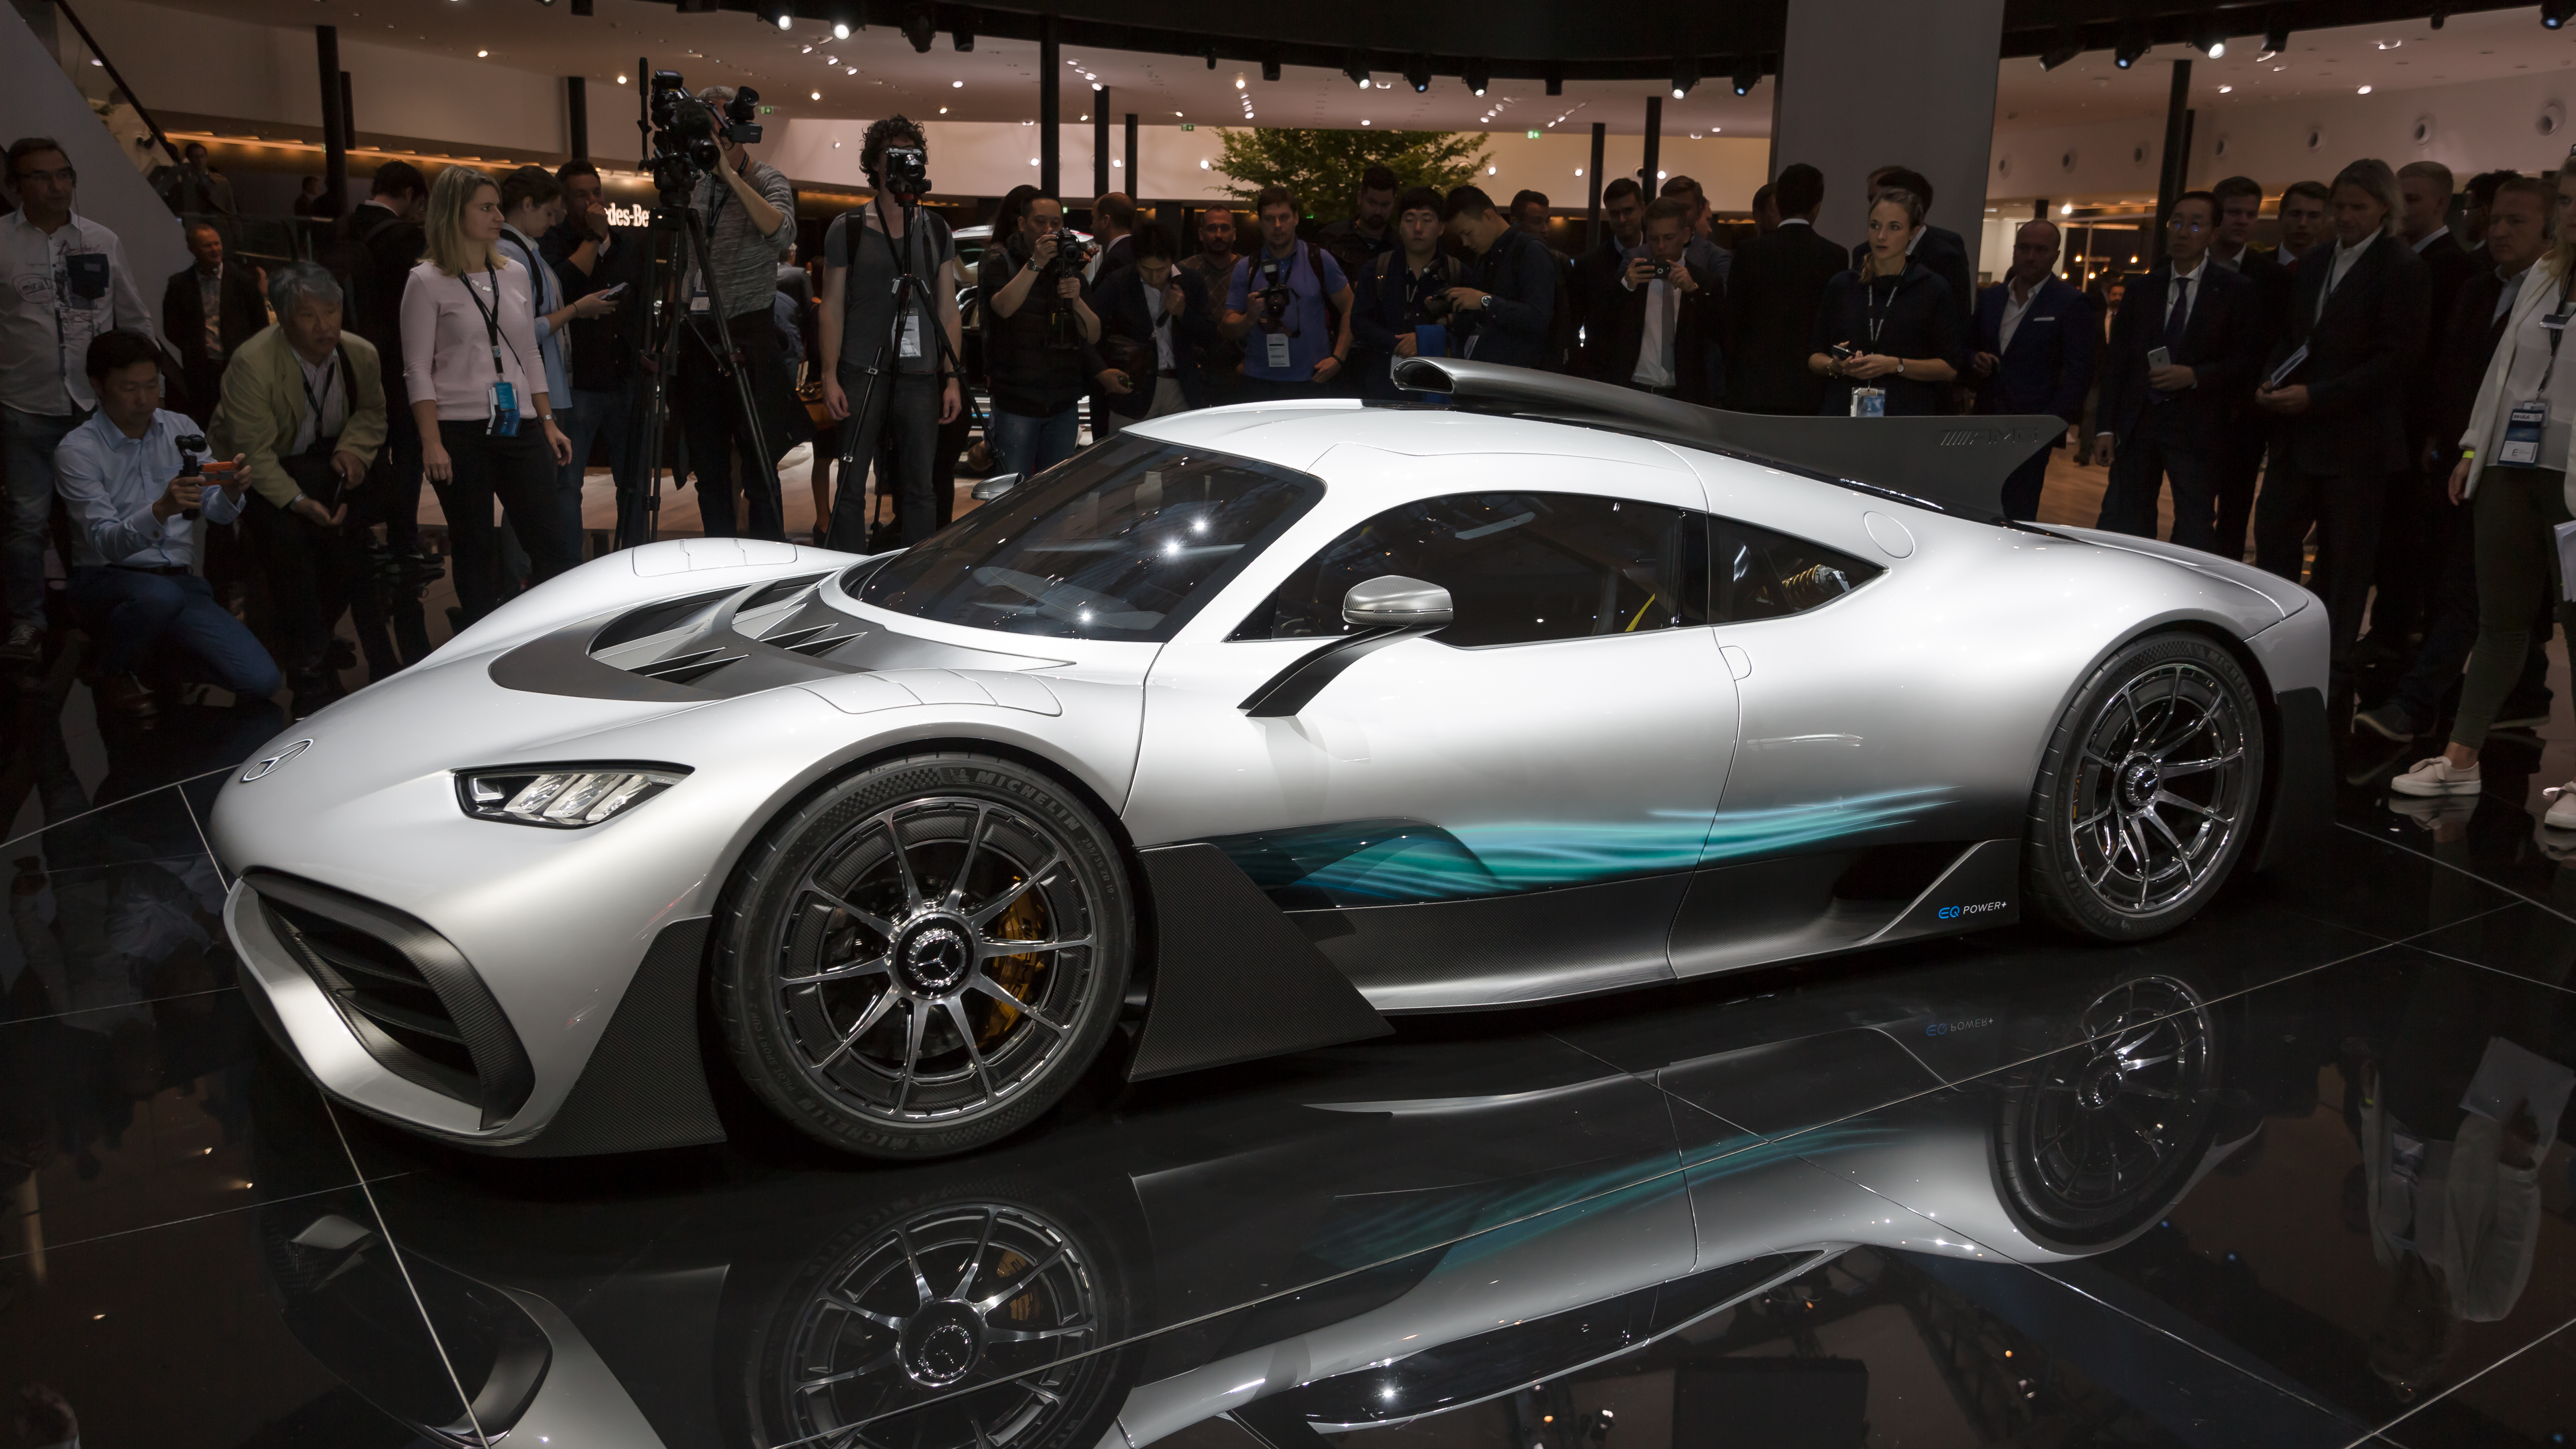 file mercedes amg project one iaa 2017 frankfurt 1y7a2949 jpg wikimedia commons. Black Bedroom Furniture Sets. Home Design Ideas